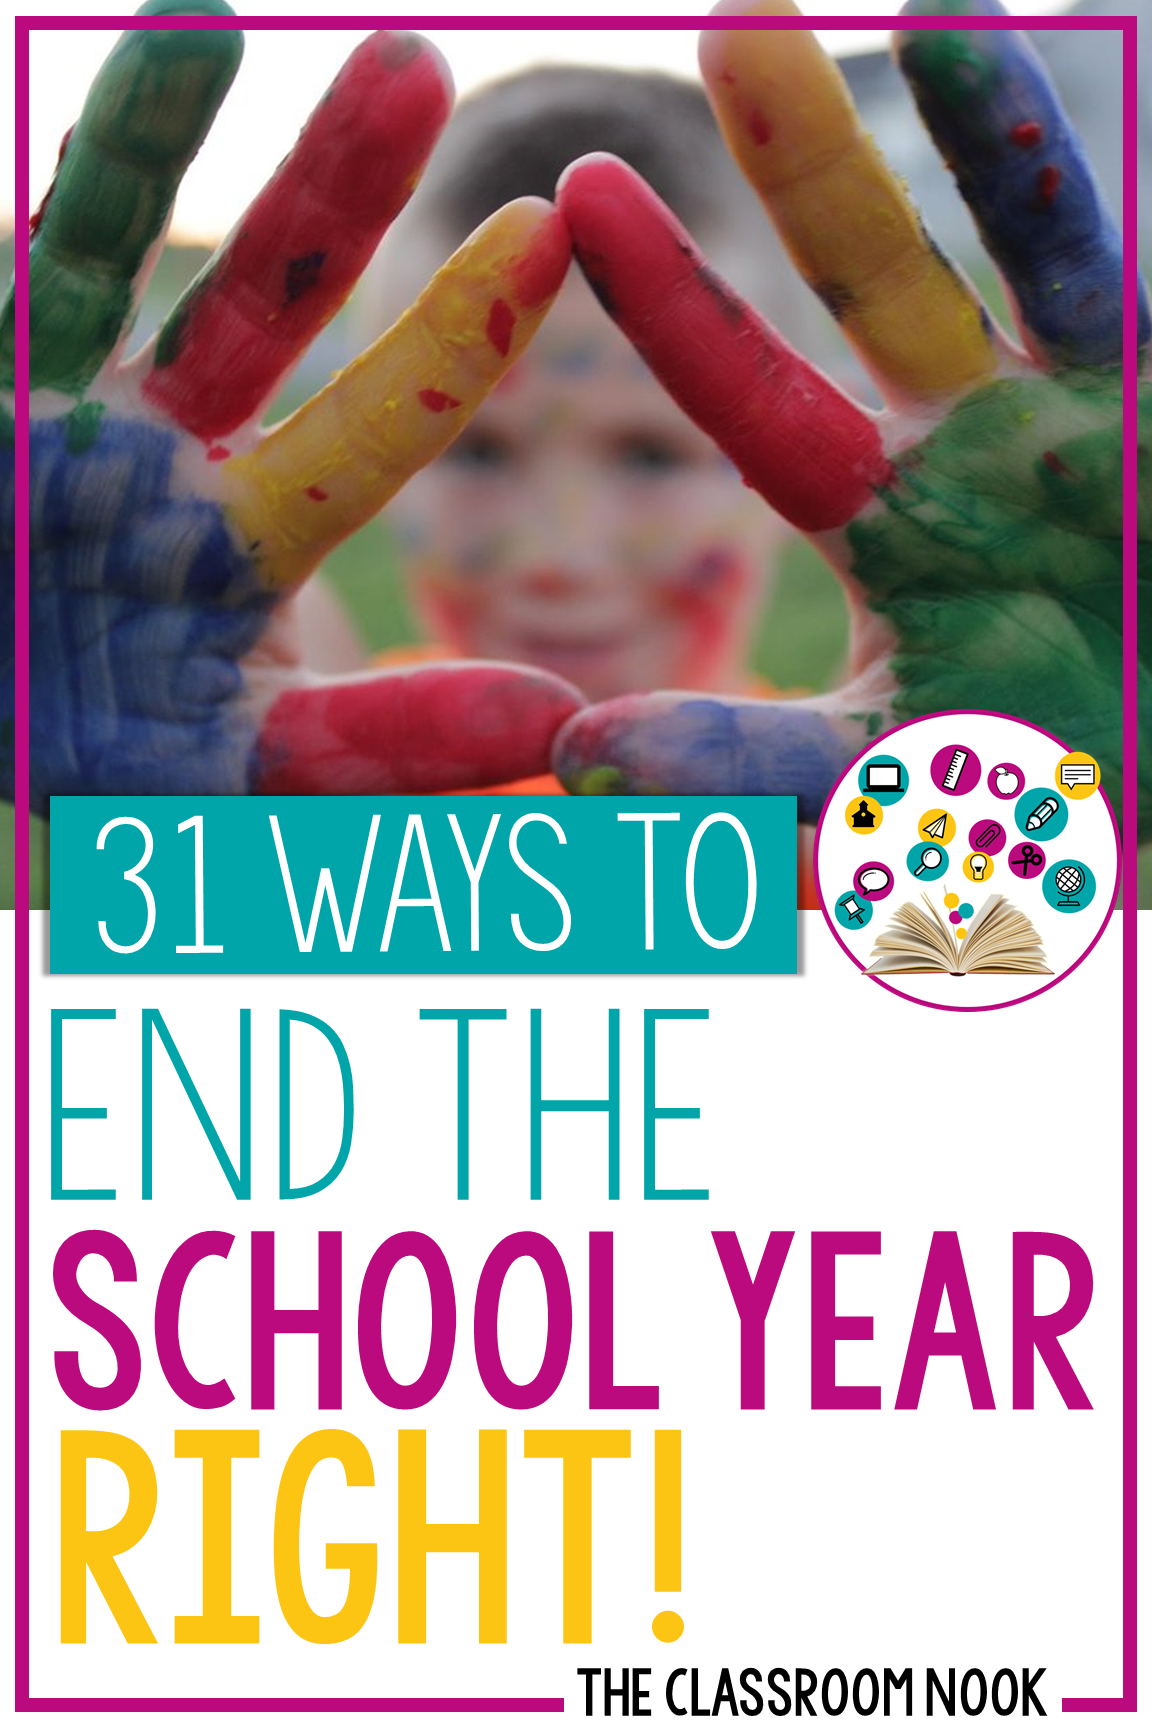 Looking for some great ways to wrap up the end of the school year? Check out this post with organizational tips, crafts and activities for the end of the year, ideas for student gifts and more! #endofschoolyear #endofschool #classroomorganization